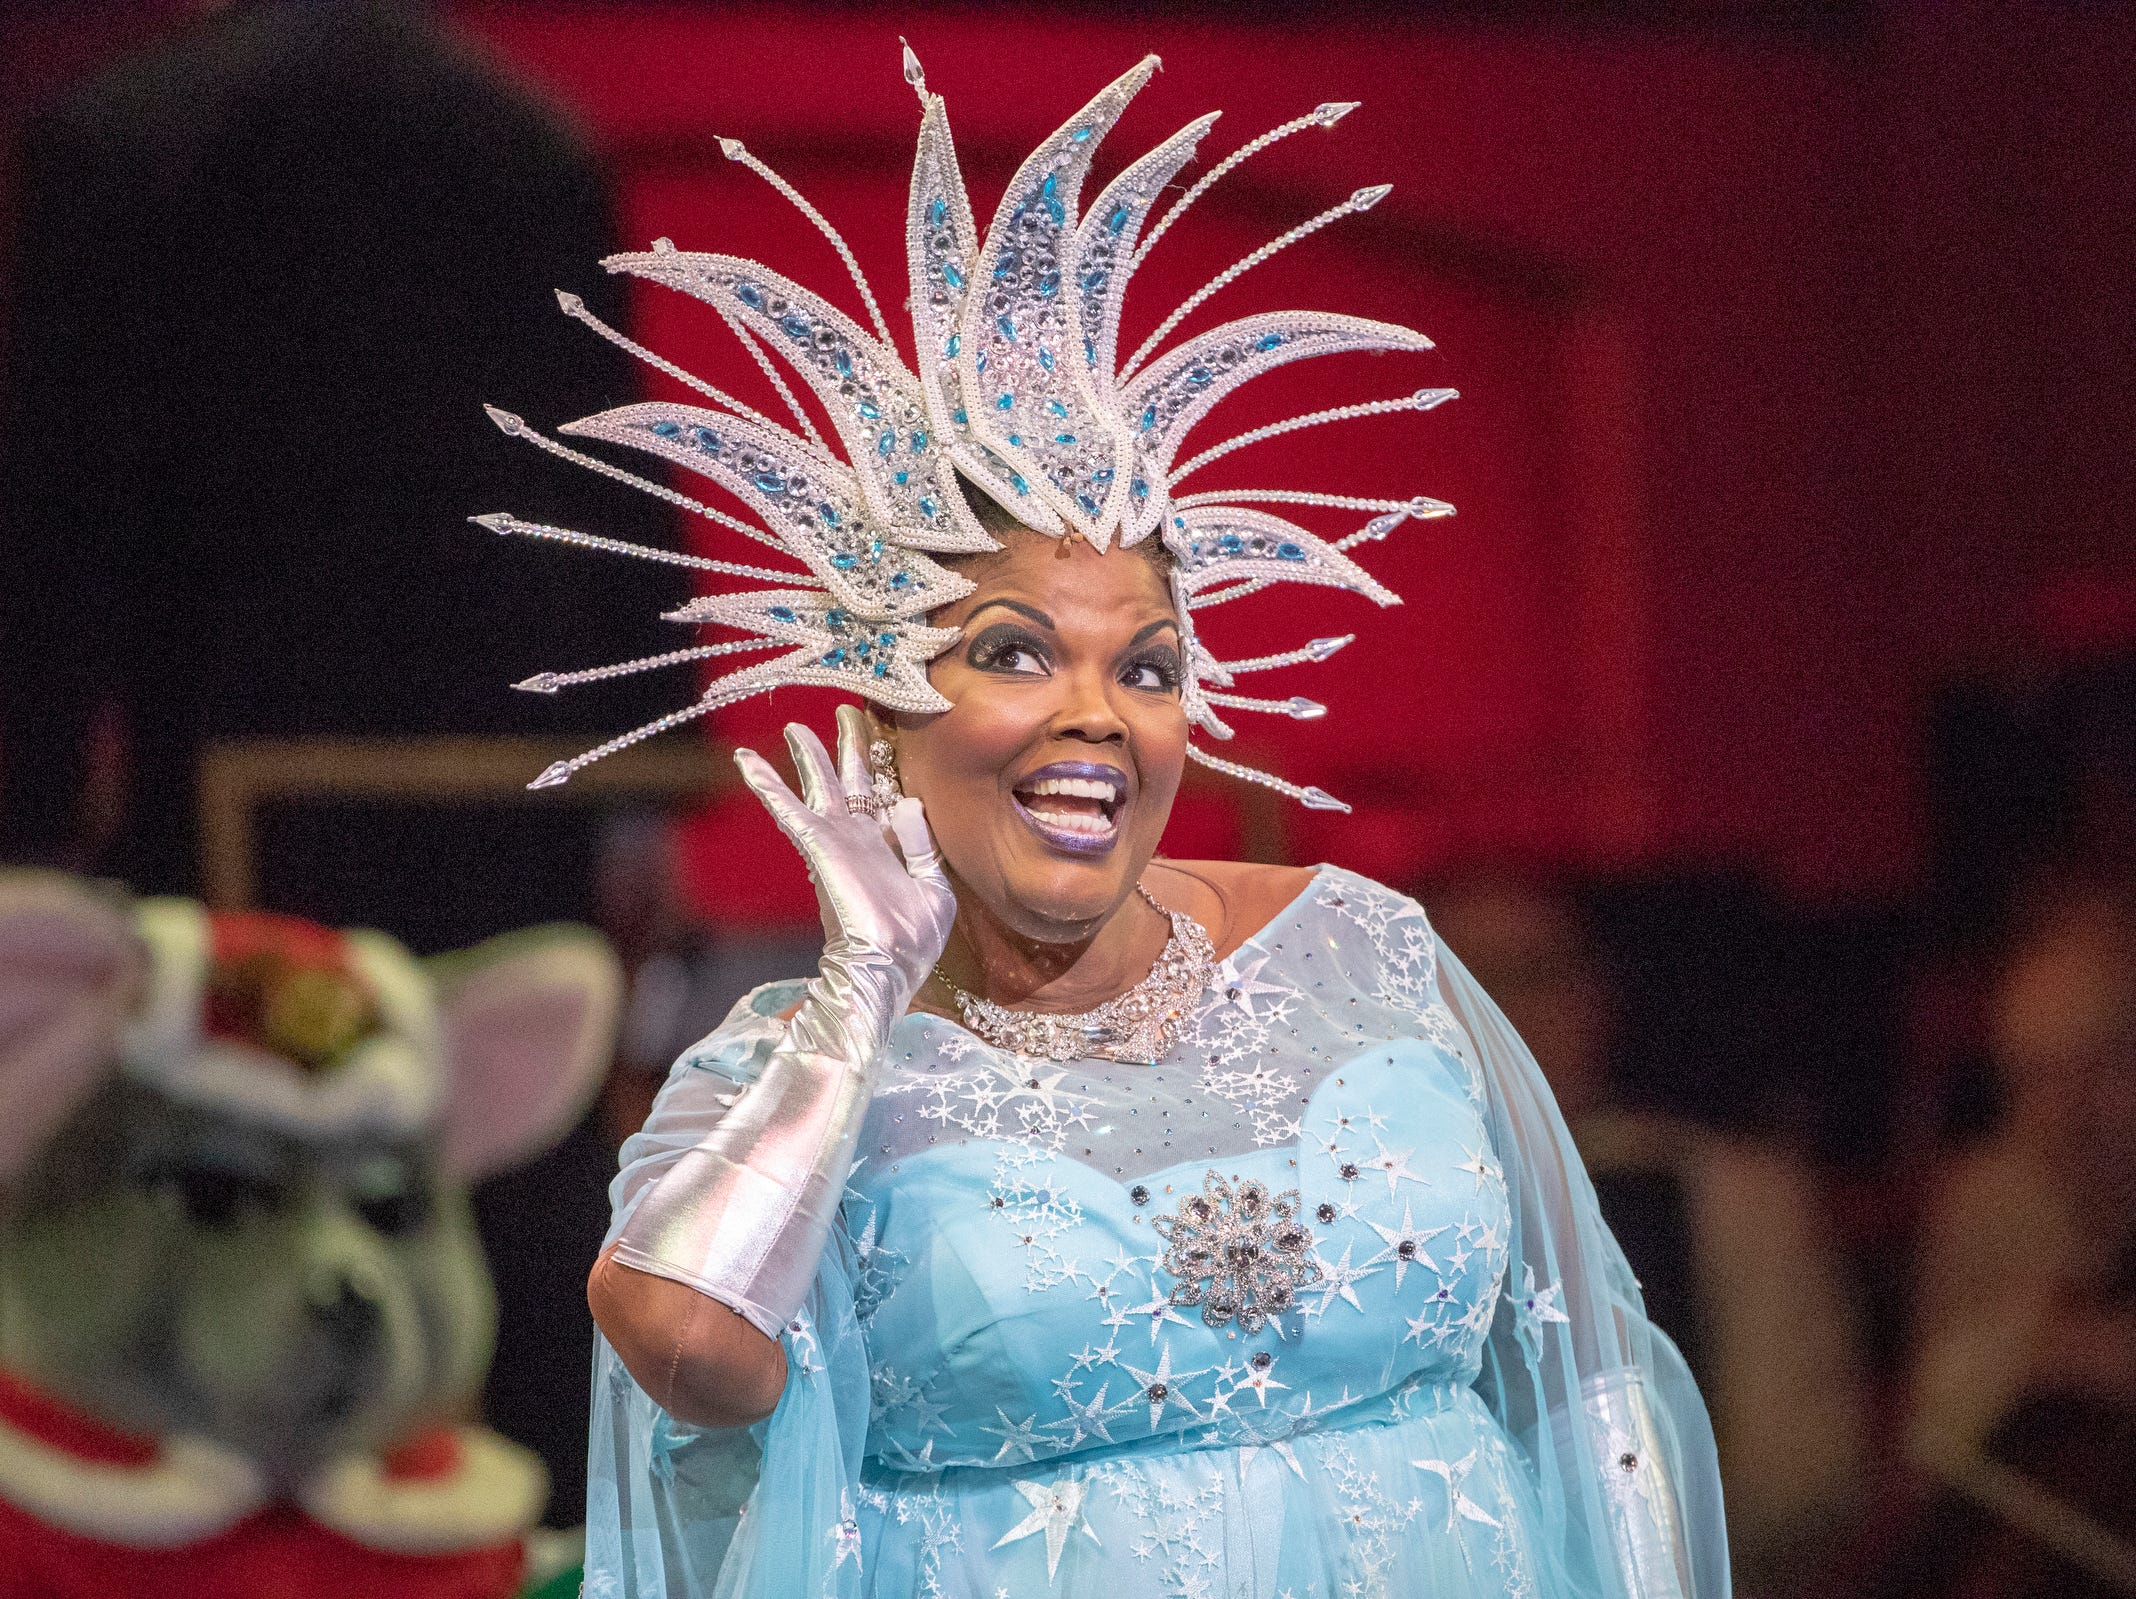 Angela Brown sings at Yuletide Celebration, showcasing the Indianapolis Symphony Orchestra, at Hilbert Circle Theater, Indianapolis, Sunday. Dec. 23, 2018. The extravaganza features dancing, holiday songs, and skits.